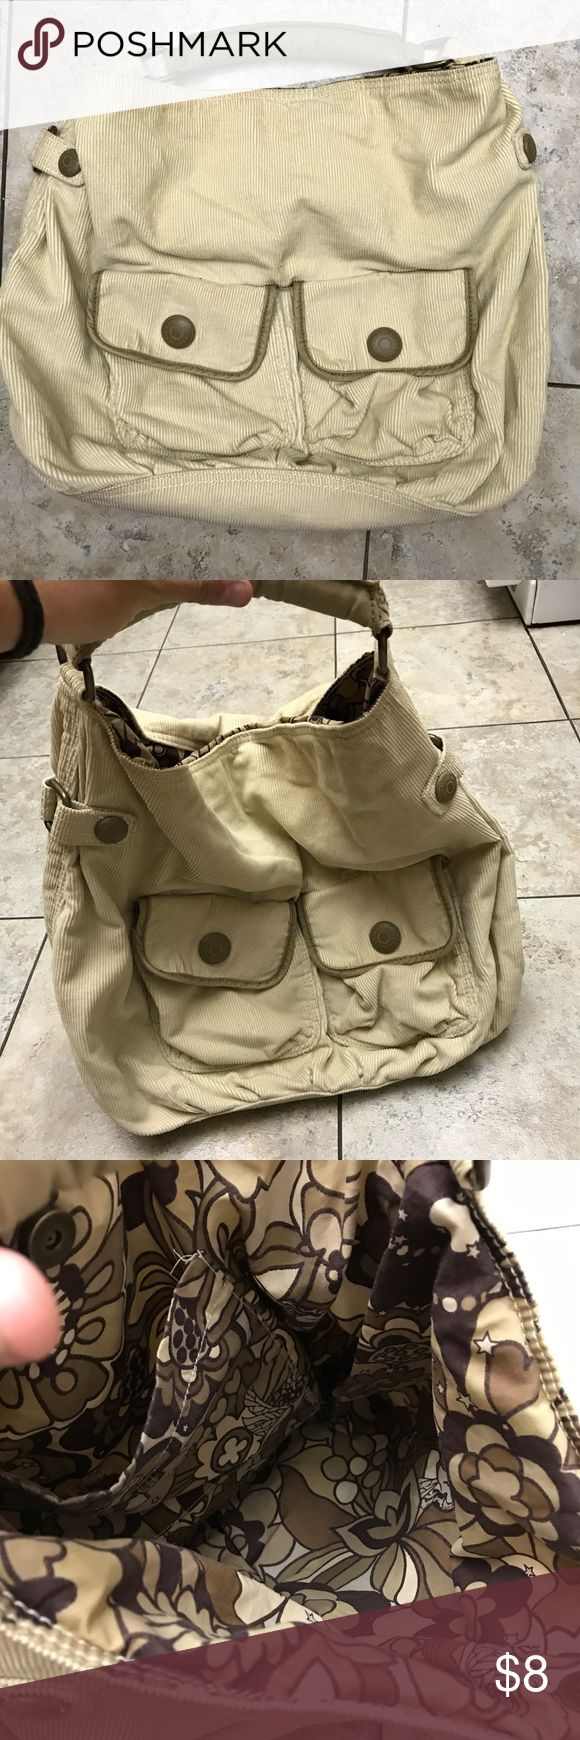 GAP purse Like never never carried  Beige in color  Spotless on inside  Magnetic closure   Front pockets  Approx 17 inches wide by 15 inches deep GAP Bags